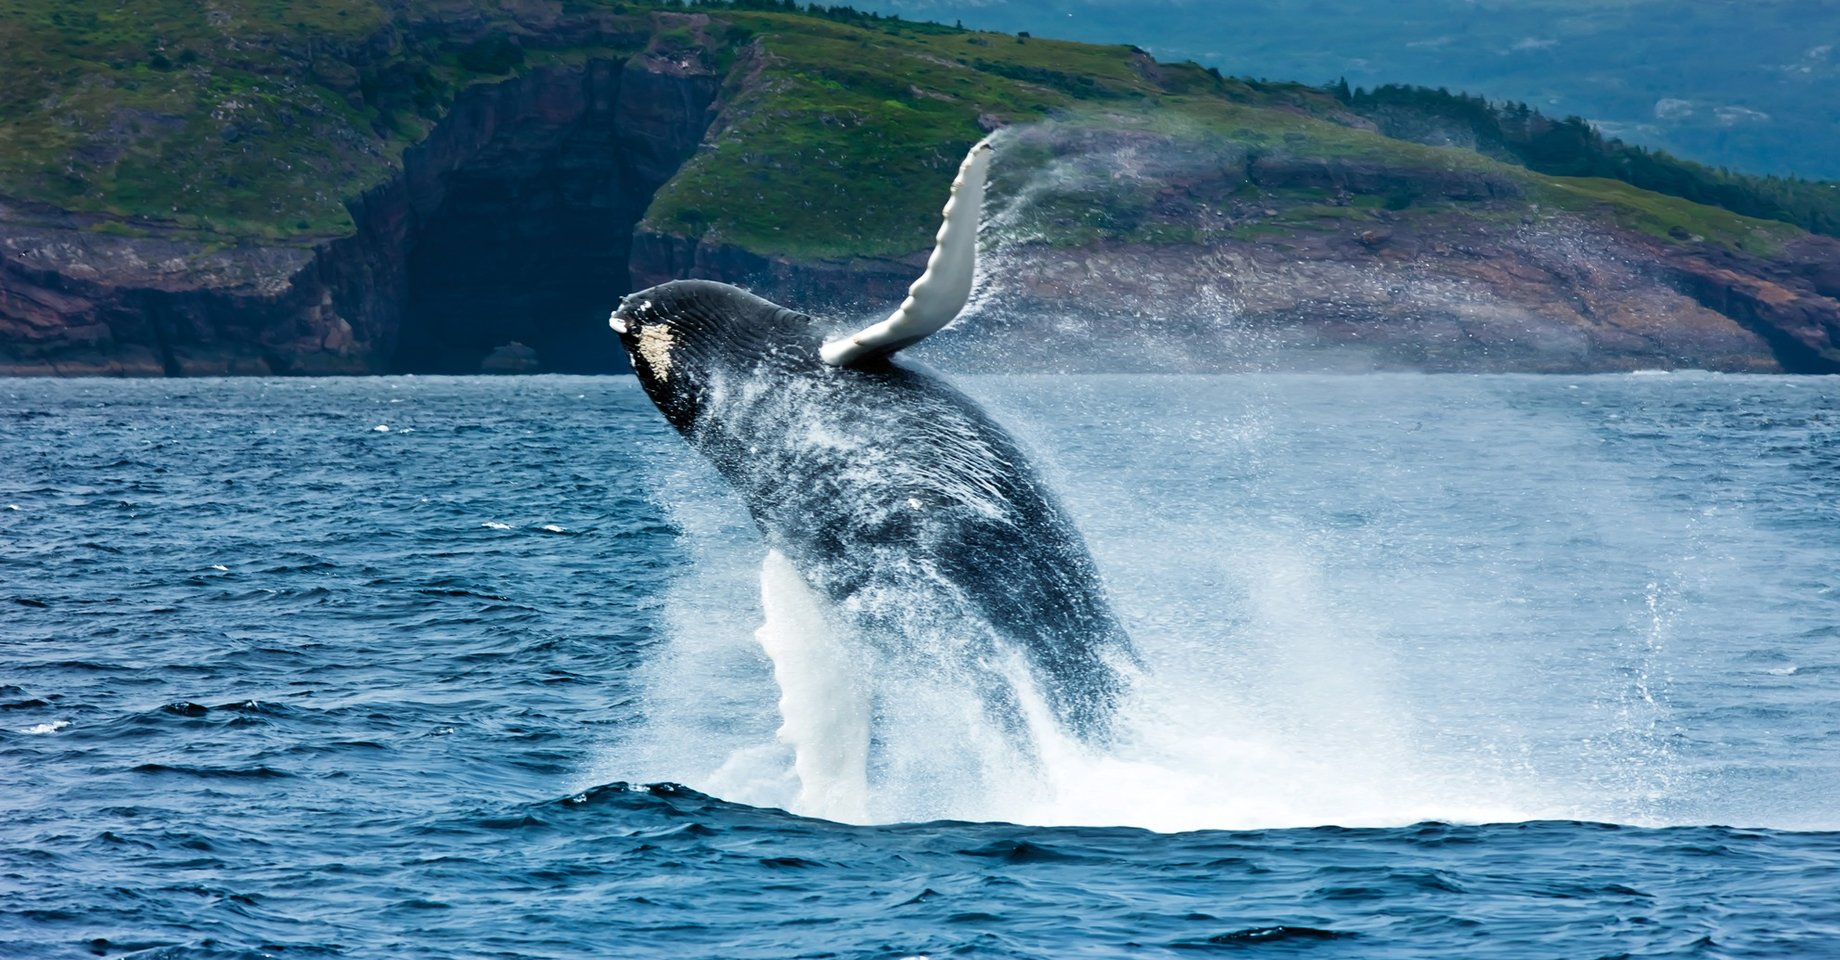 Breaching Whale in Newfoundland